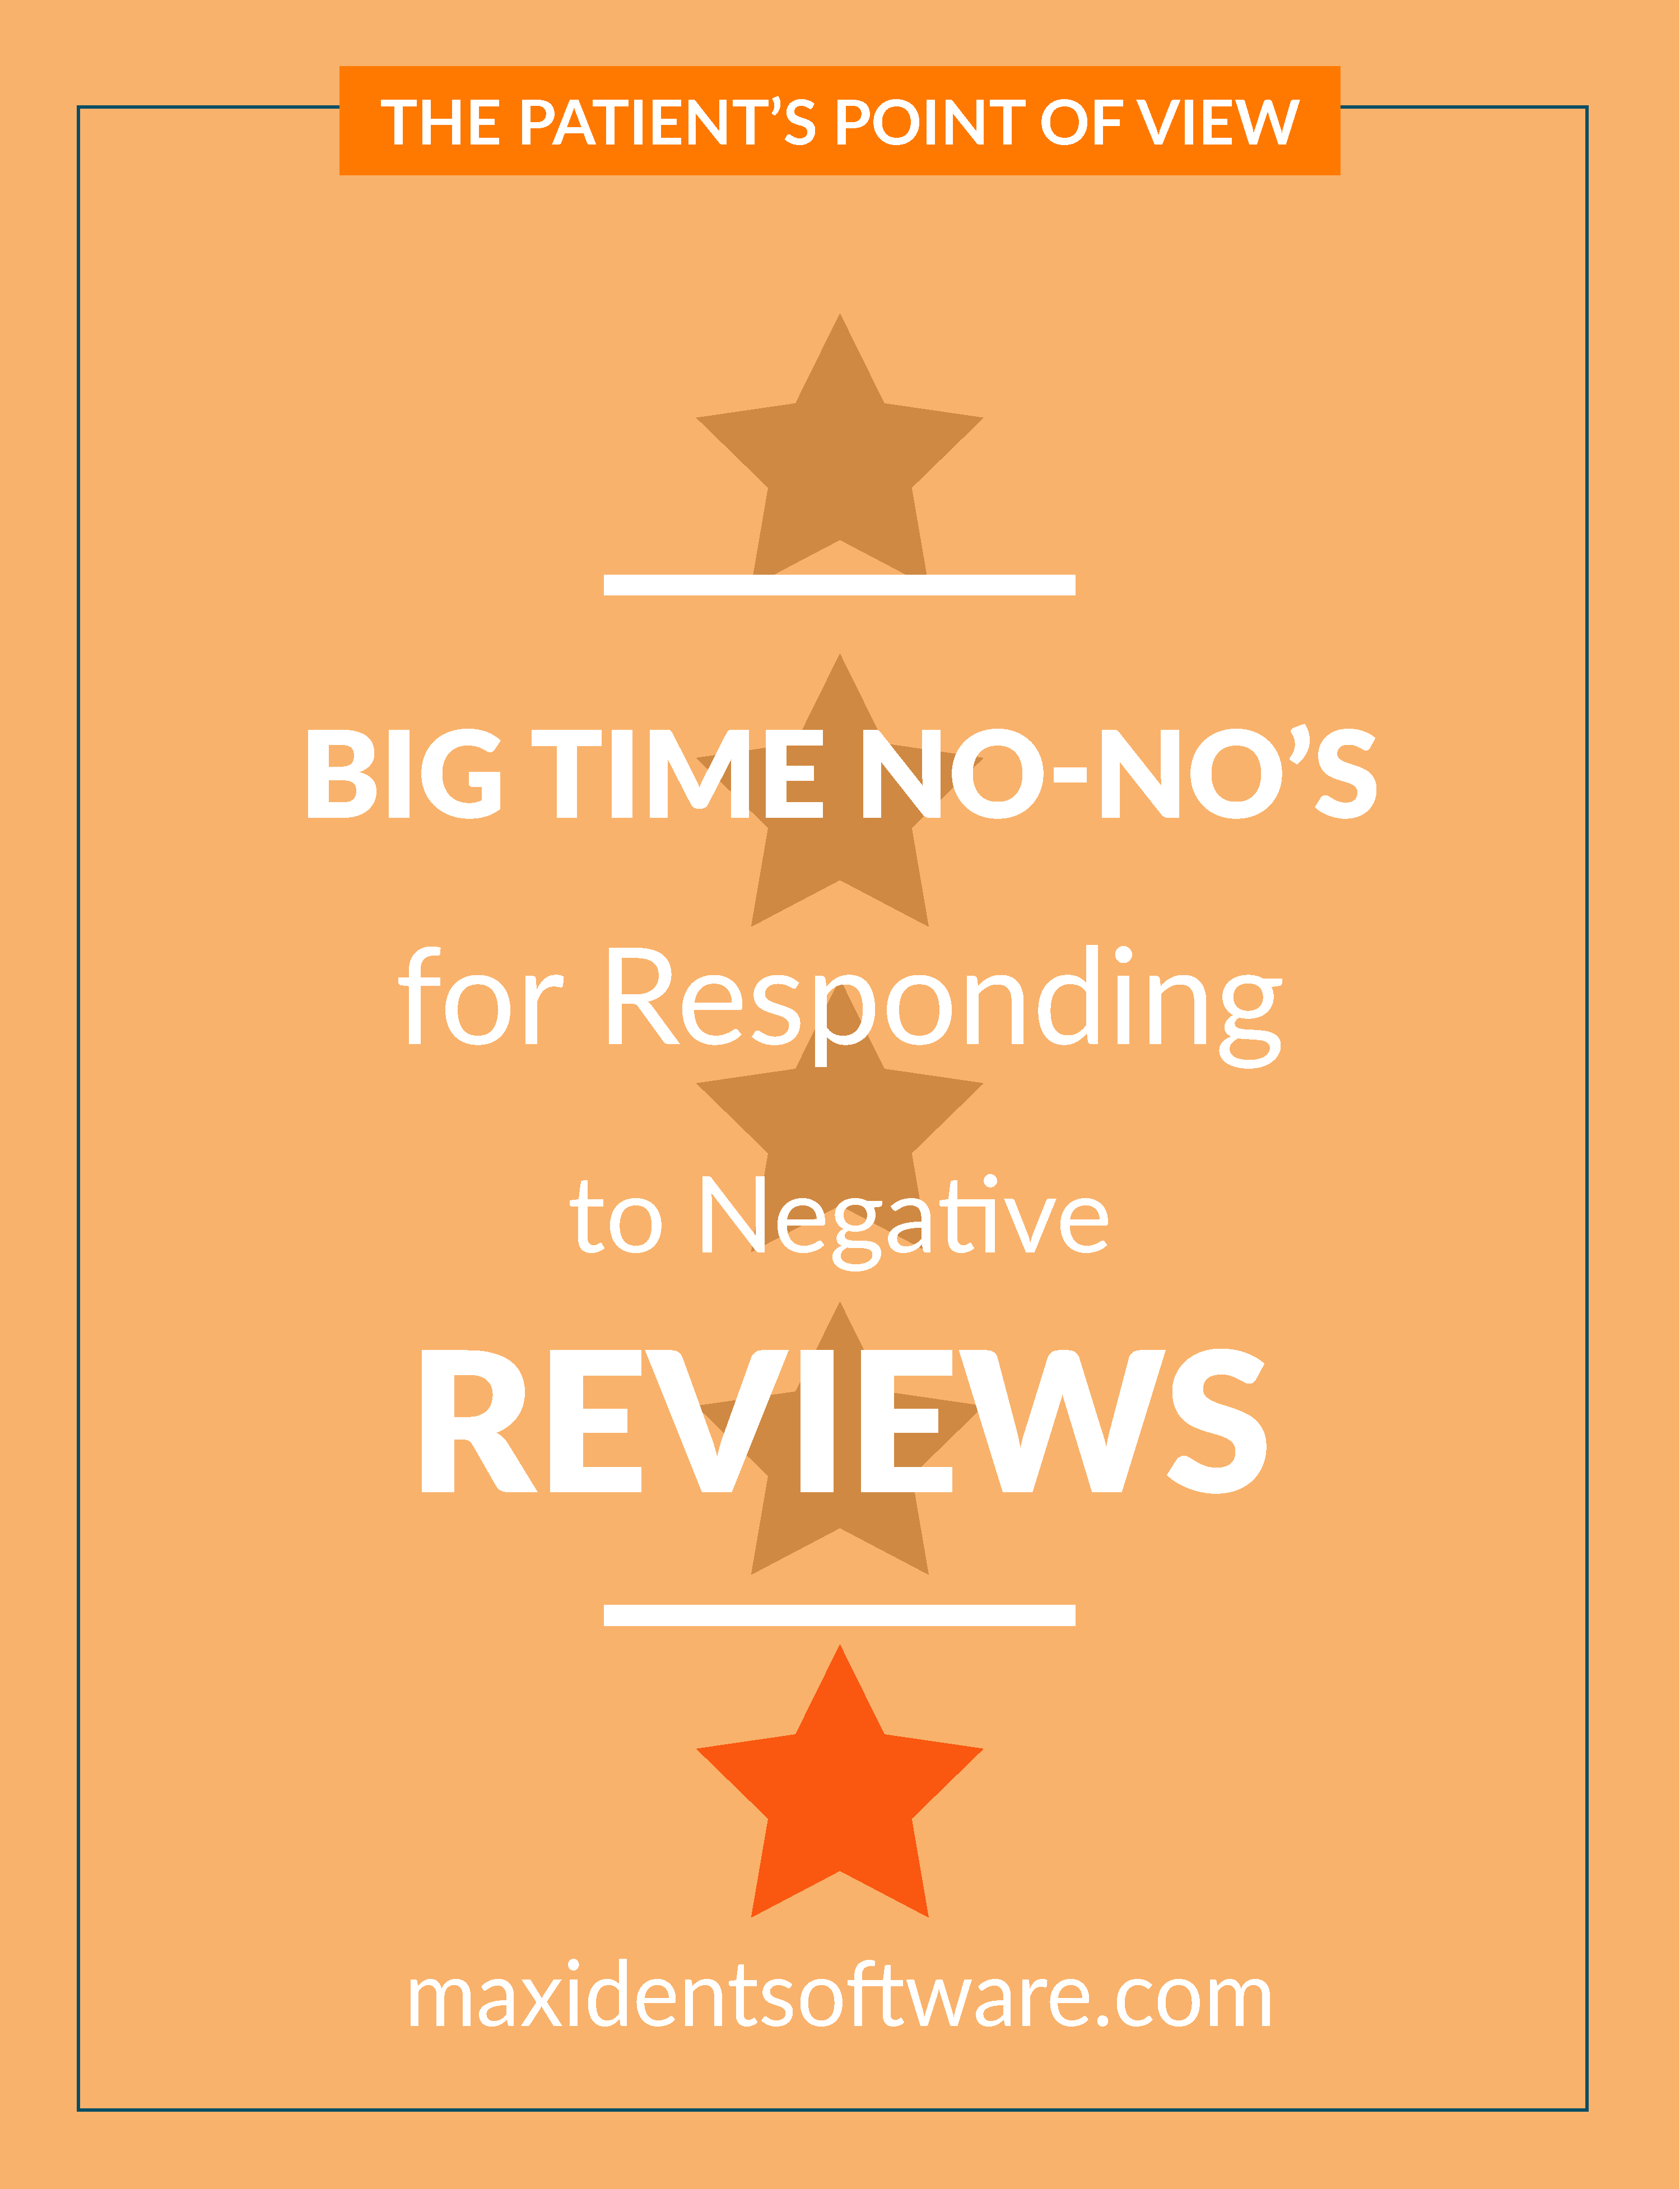 Big Time No-No's for Responding to Negative Reviews